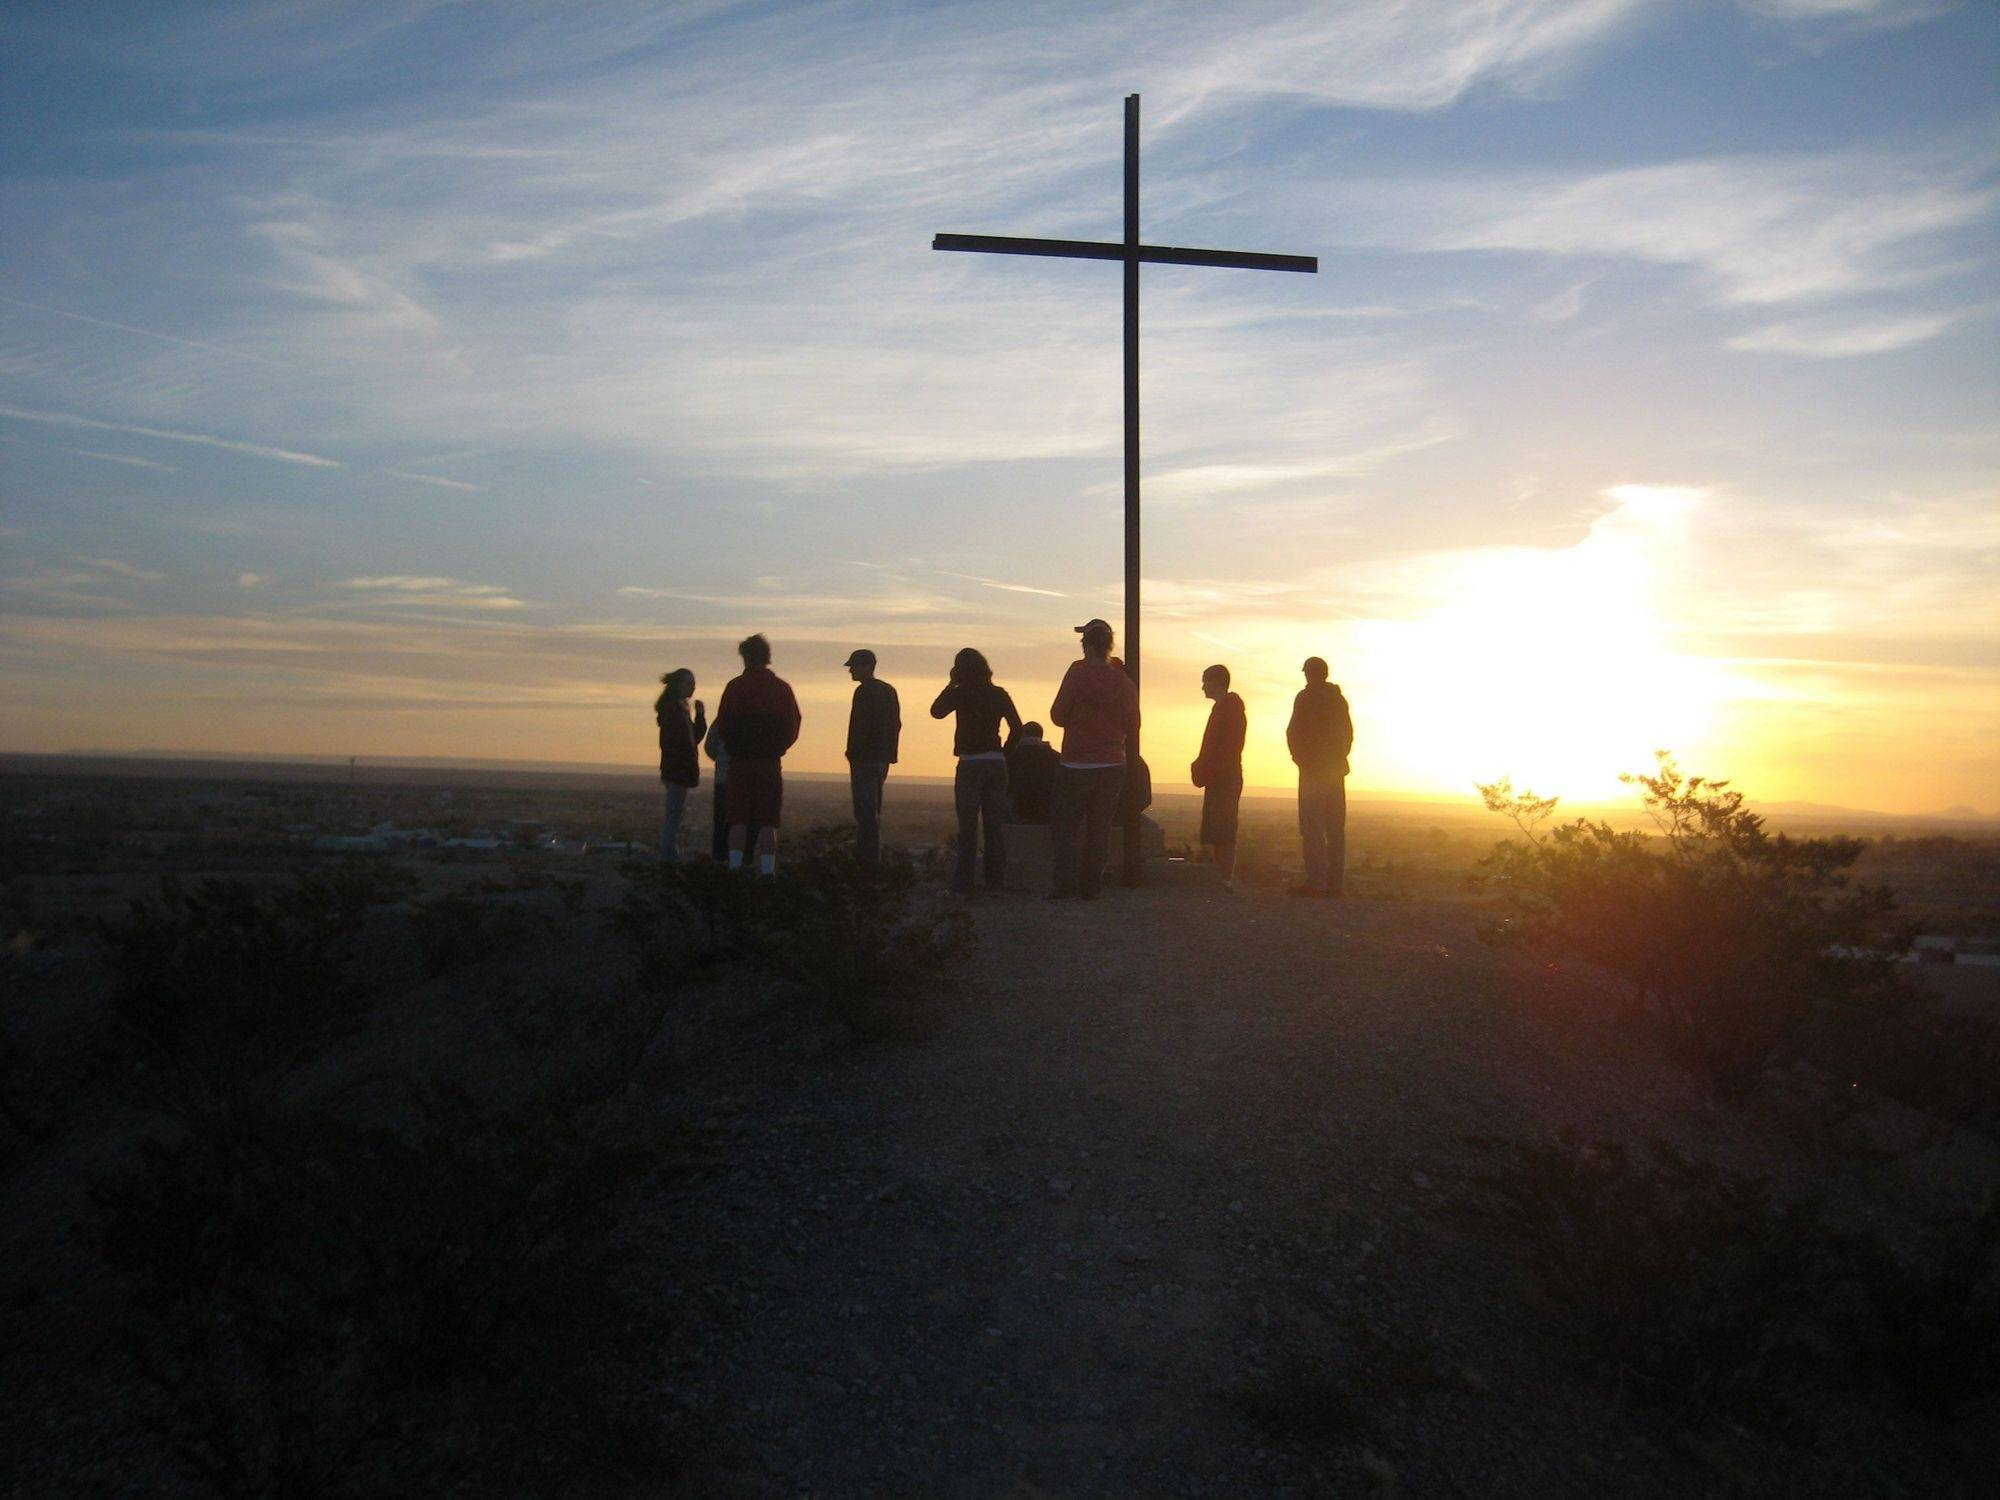 A silhouette of a group of tourists near a cross on top of a hill at sunrise in Guadalupe, Mexico.